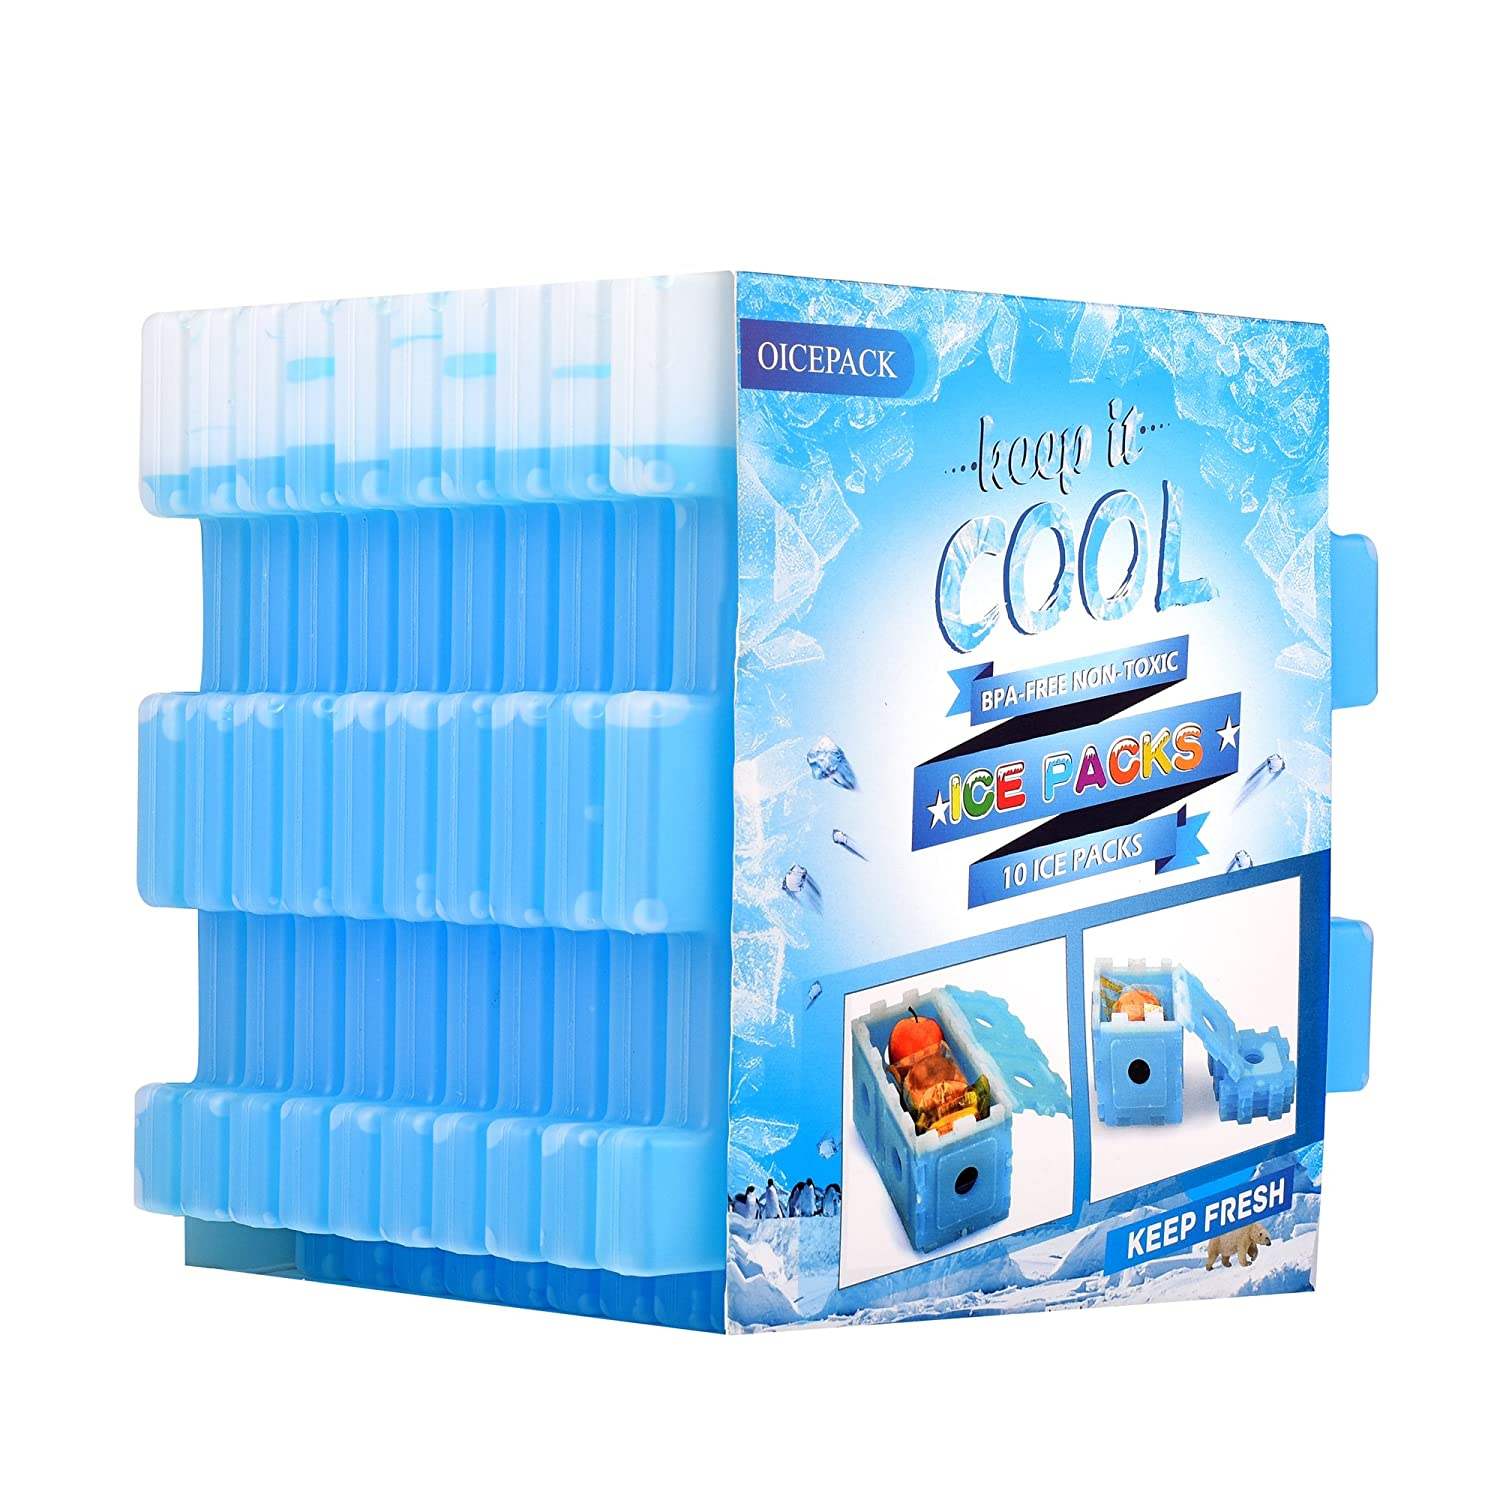 OICEPACK Ice Packs (Set of 10) Cool Pack for Lunch Box Freezer Packs for Lunch Bags and Coolers Ice Pack Slim Reusable Long Lasting Freezer Ice Packs Ice Packs Great for Coolers Blue